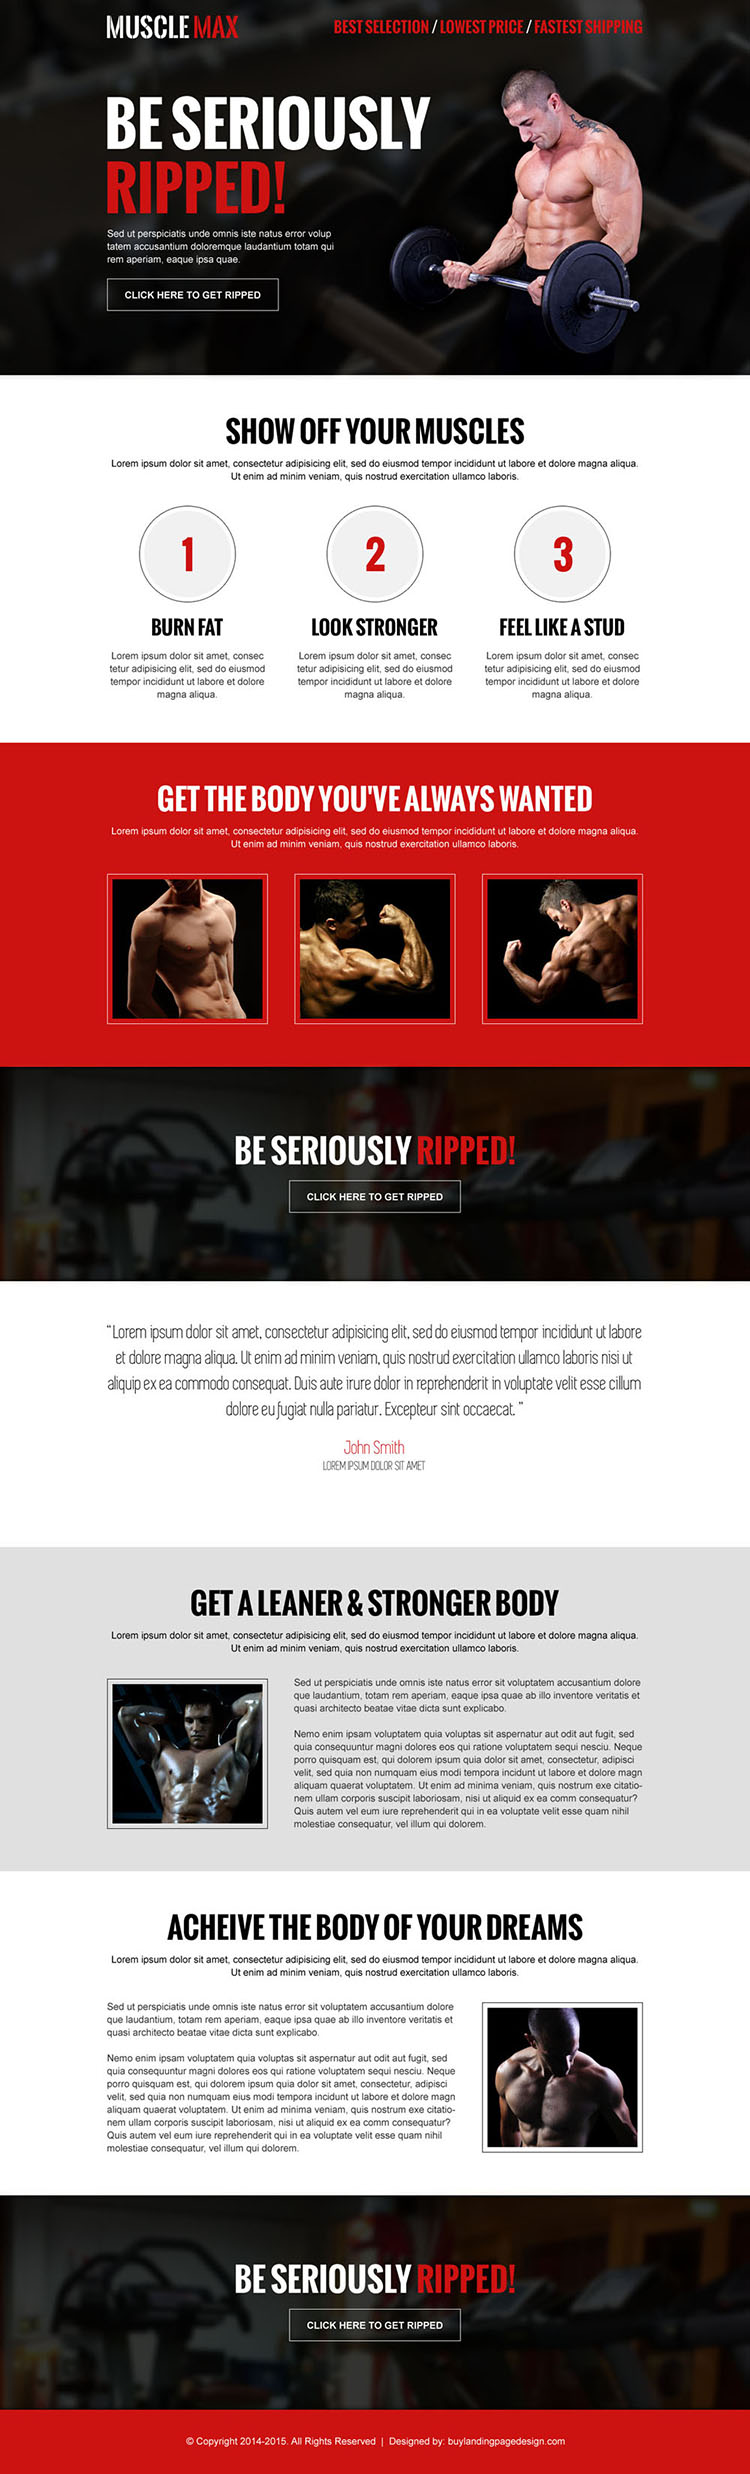 get seriously ripped clean and converting body building call to action responsive landing page design